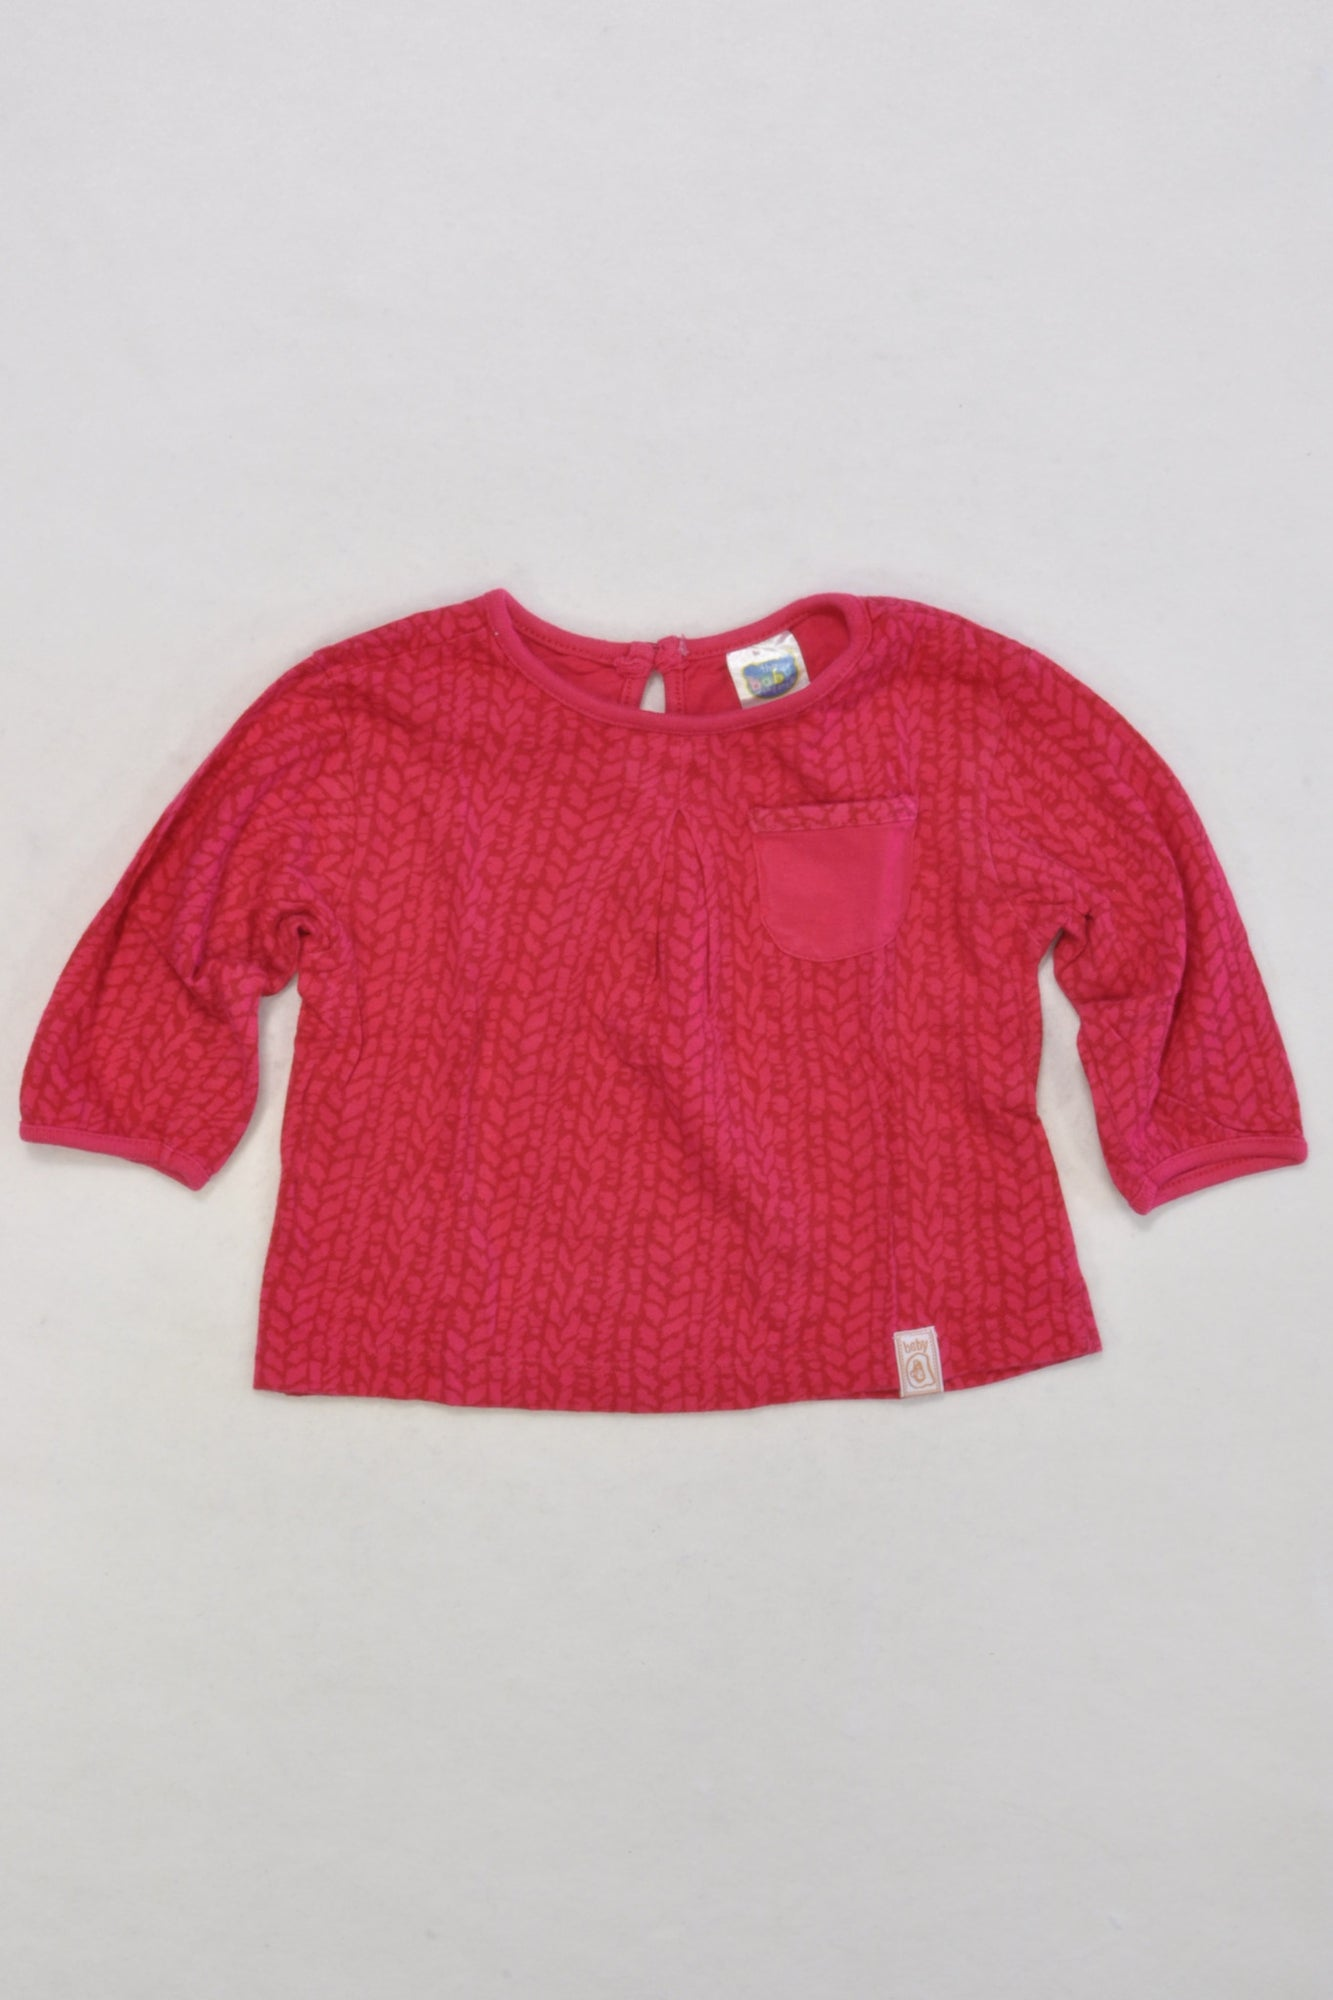 Pink Patterned Top Girls 3-6 months